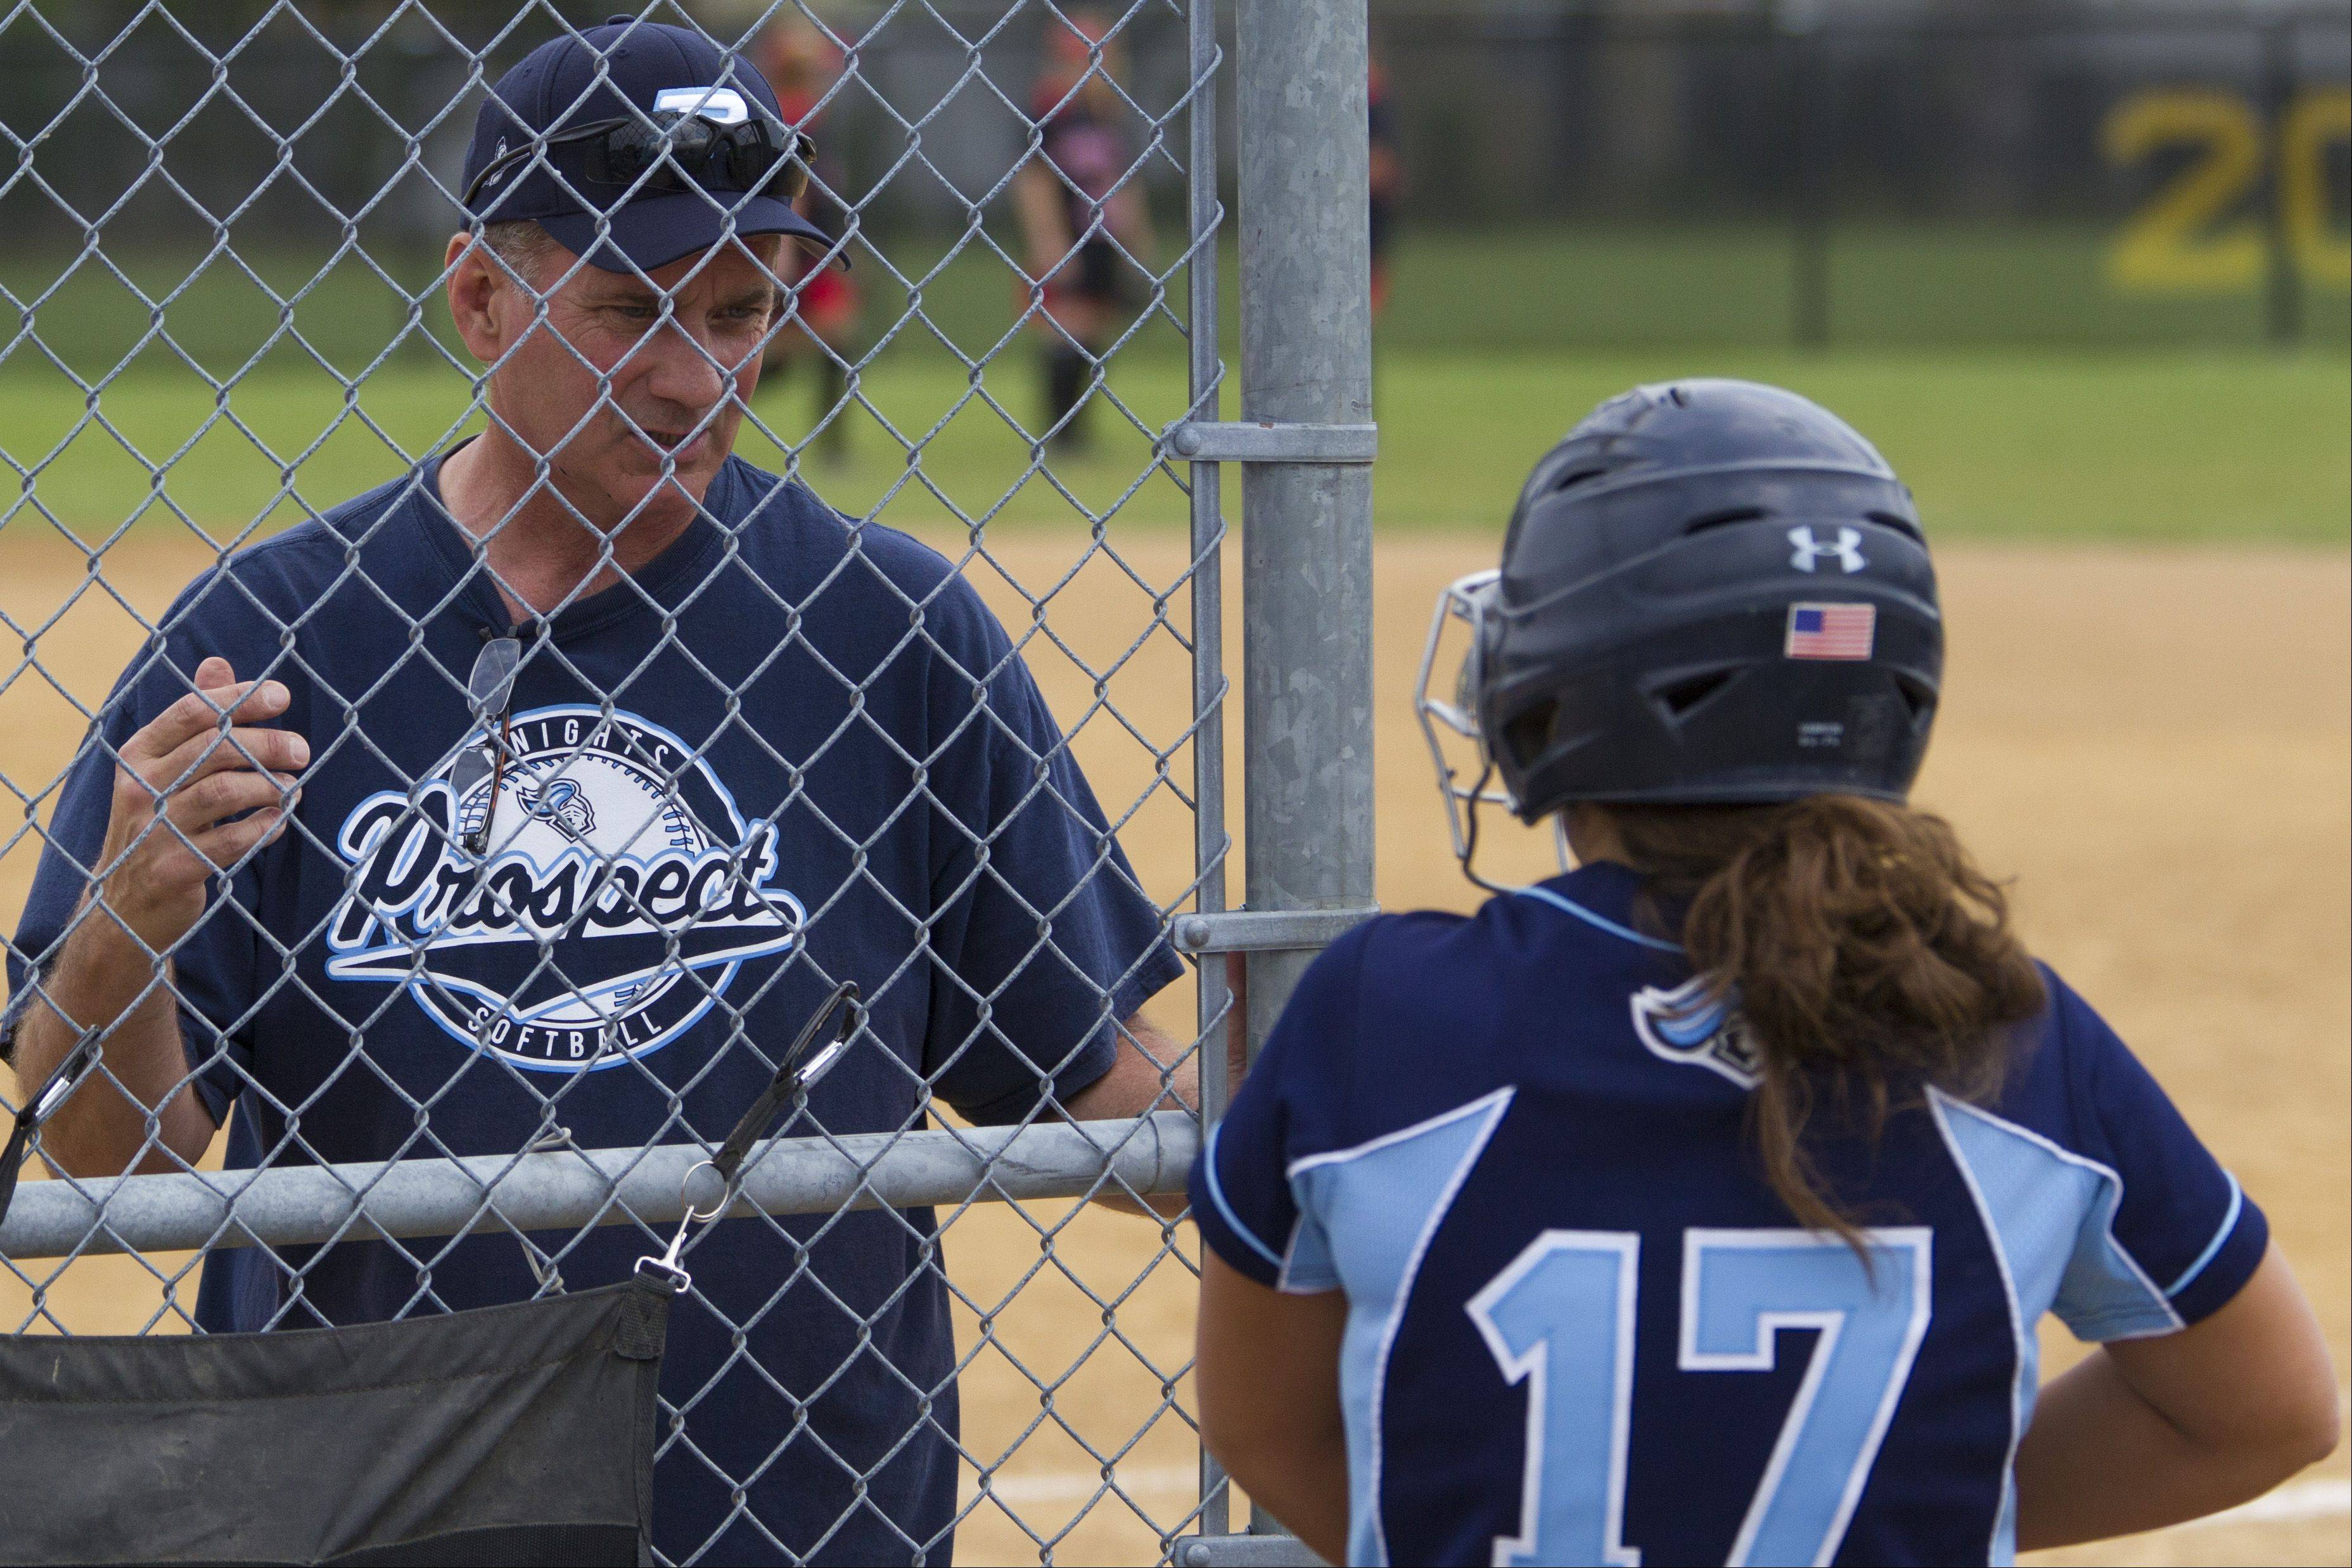 Prospect coach Jim Adair talks with Knights catcher Cassie Poulos during Class 4A regional championship play Saturday.